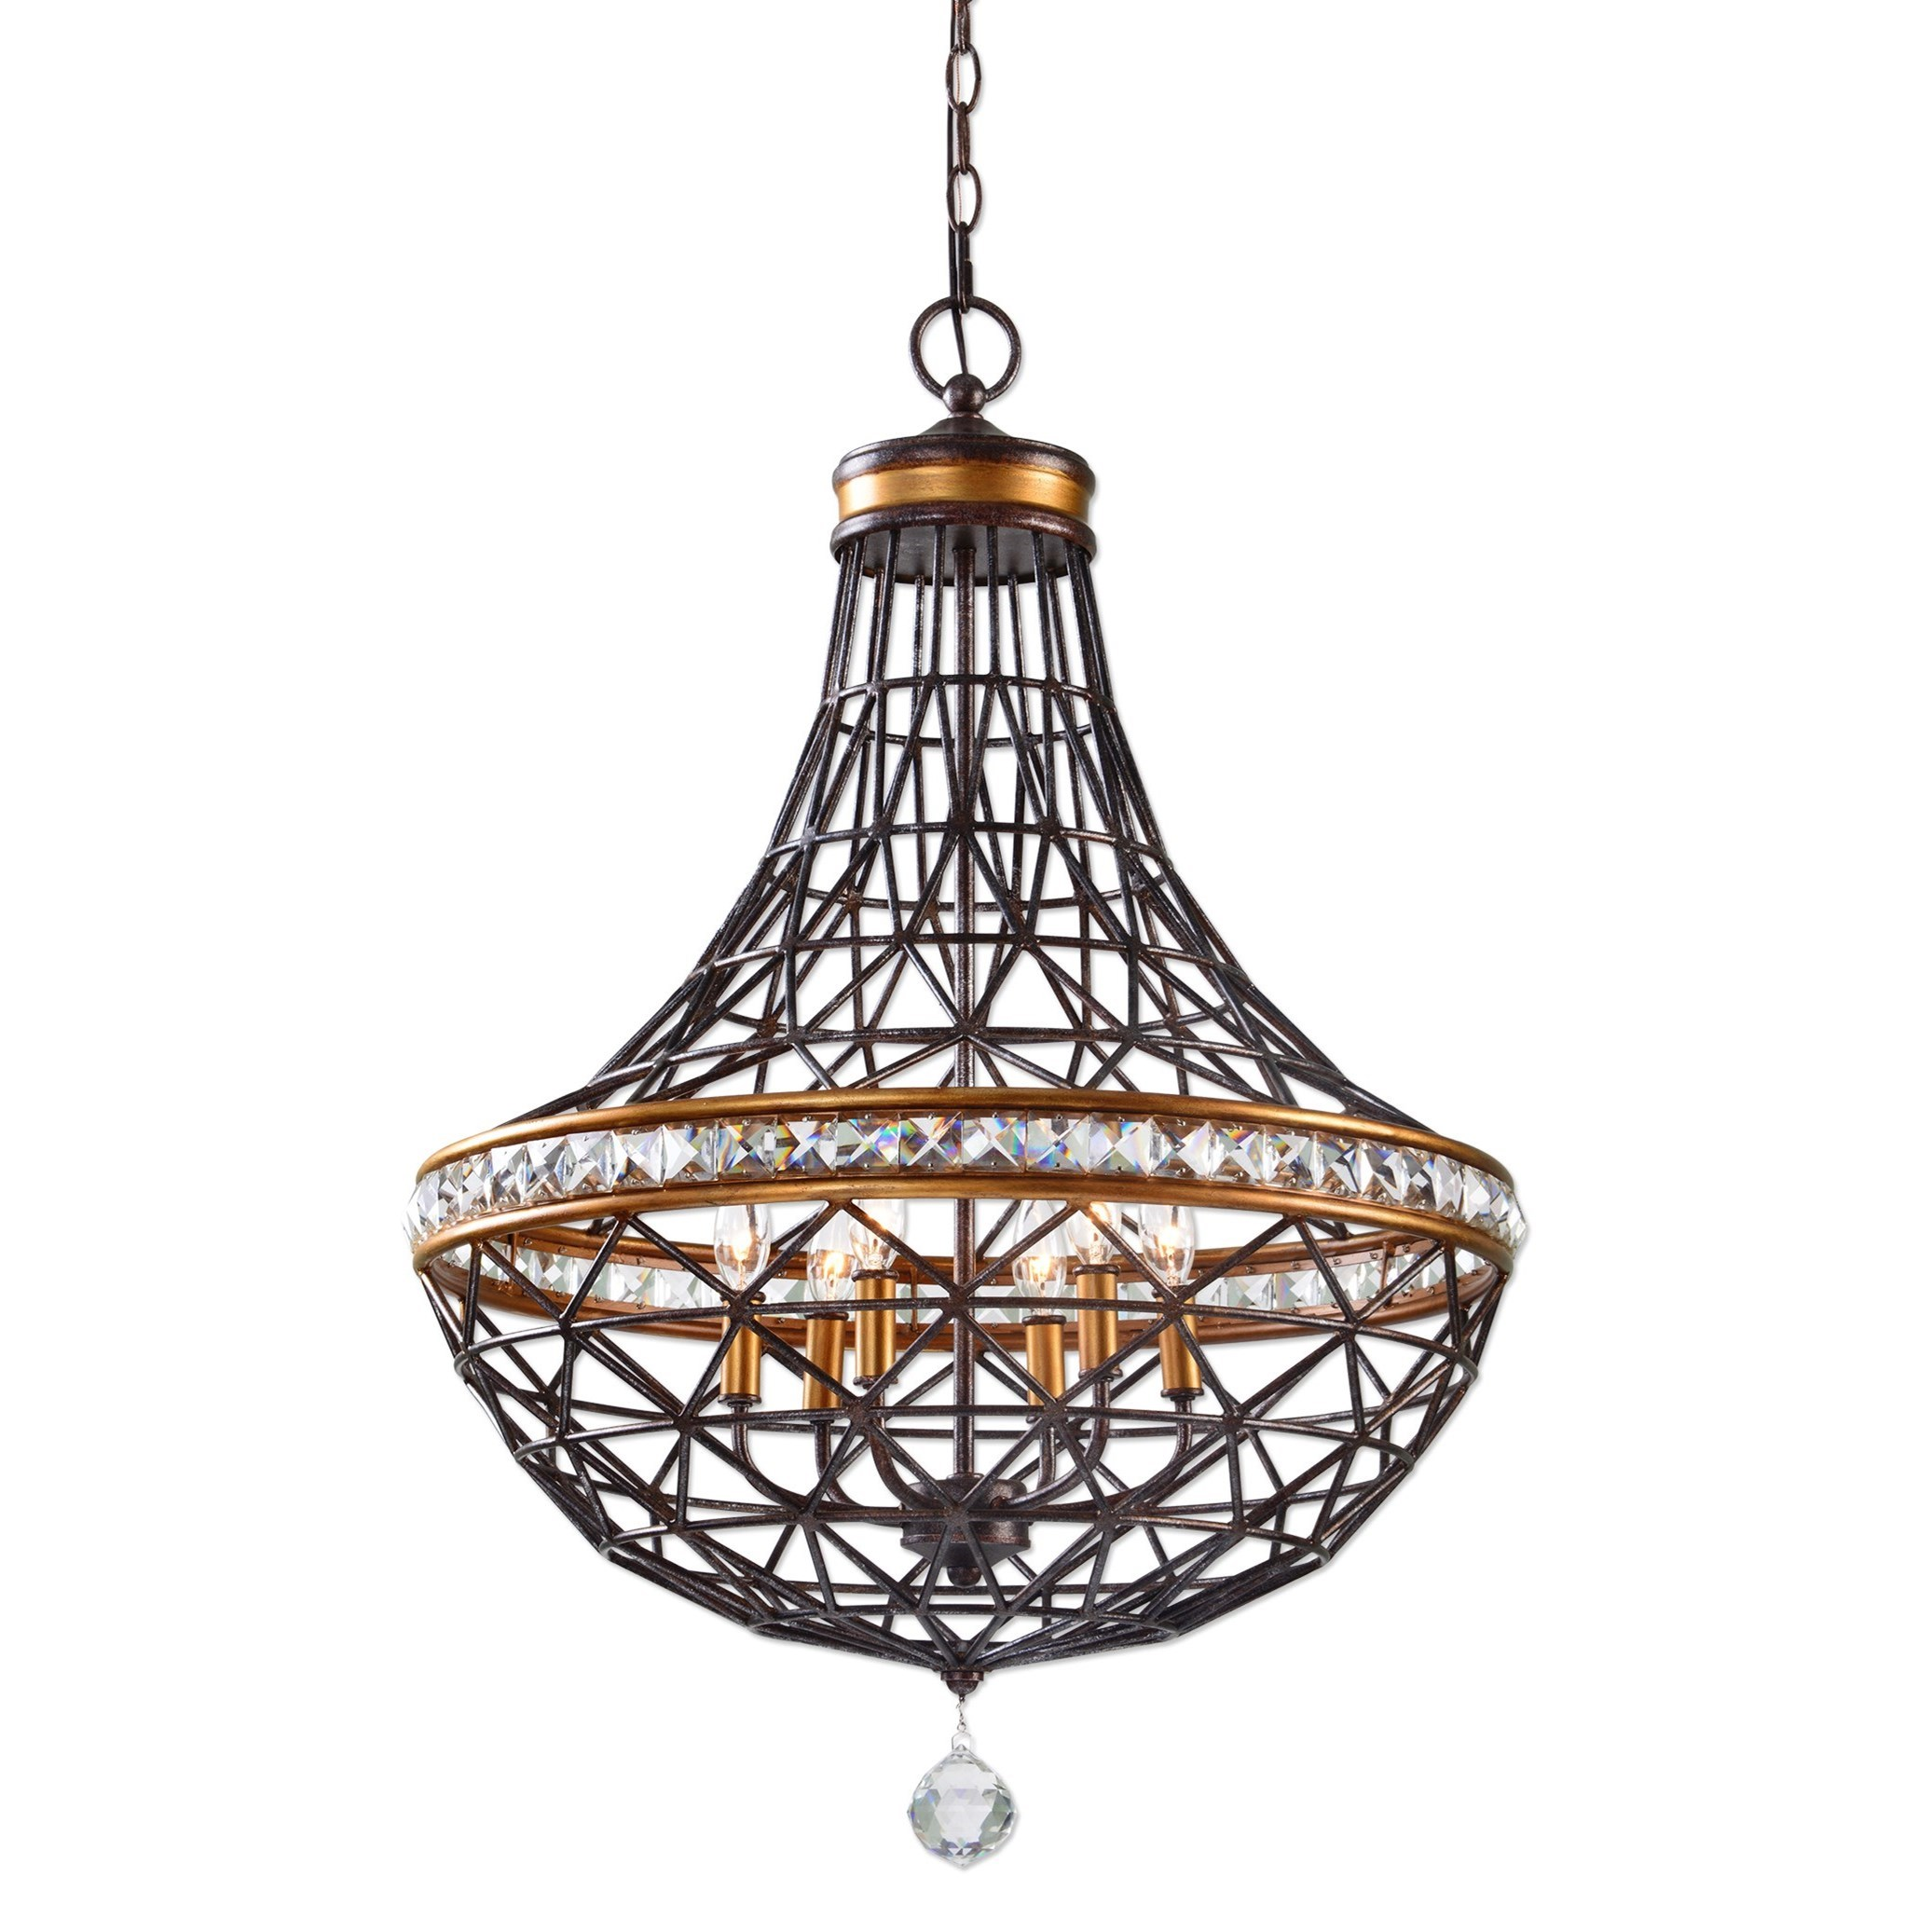 Uttermost Lighting Fixtures Cestino 6 Light Geometric Pendant - Item Number: 21292